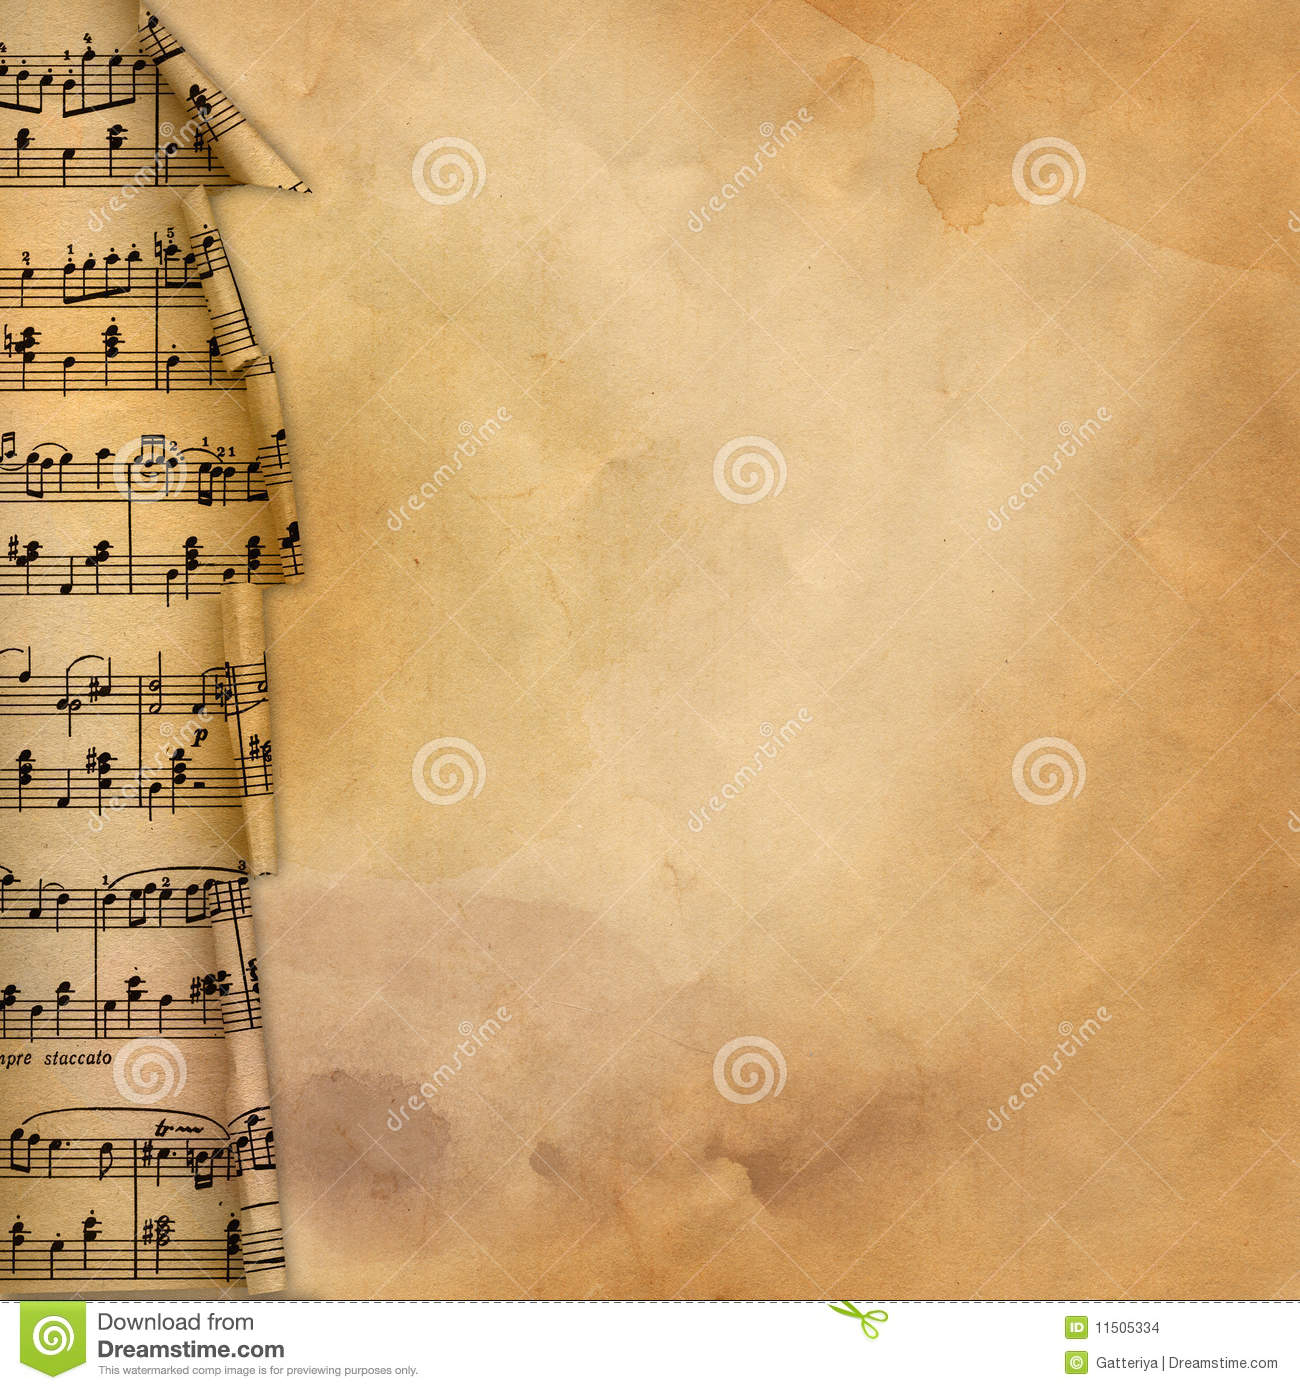 Old Background With Musical Border For Design Stock Images - Image ...